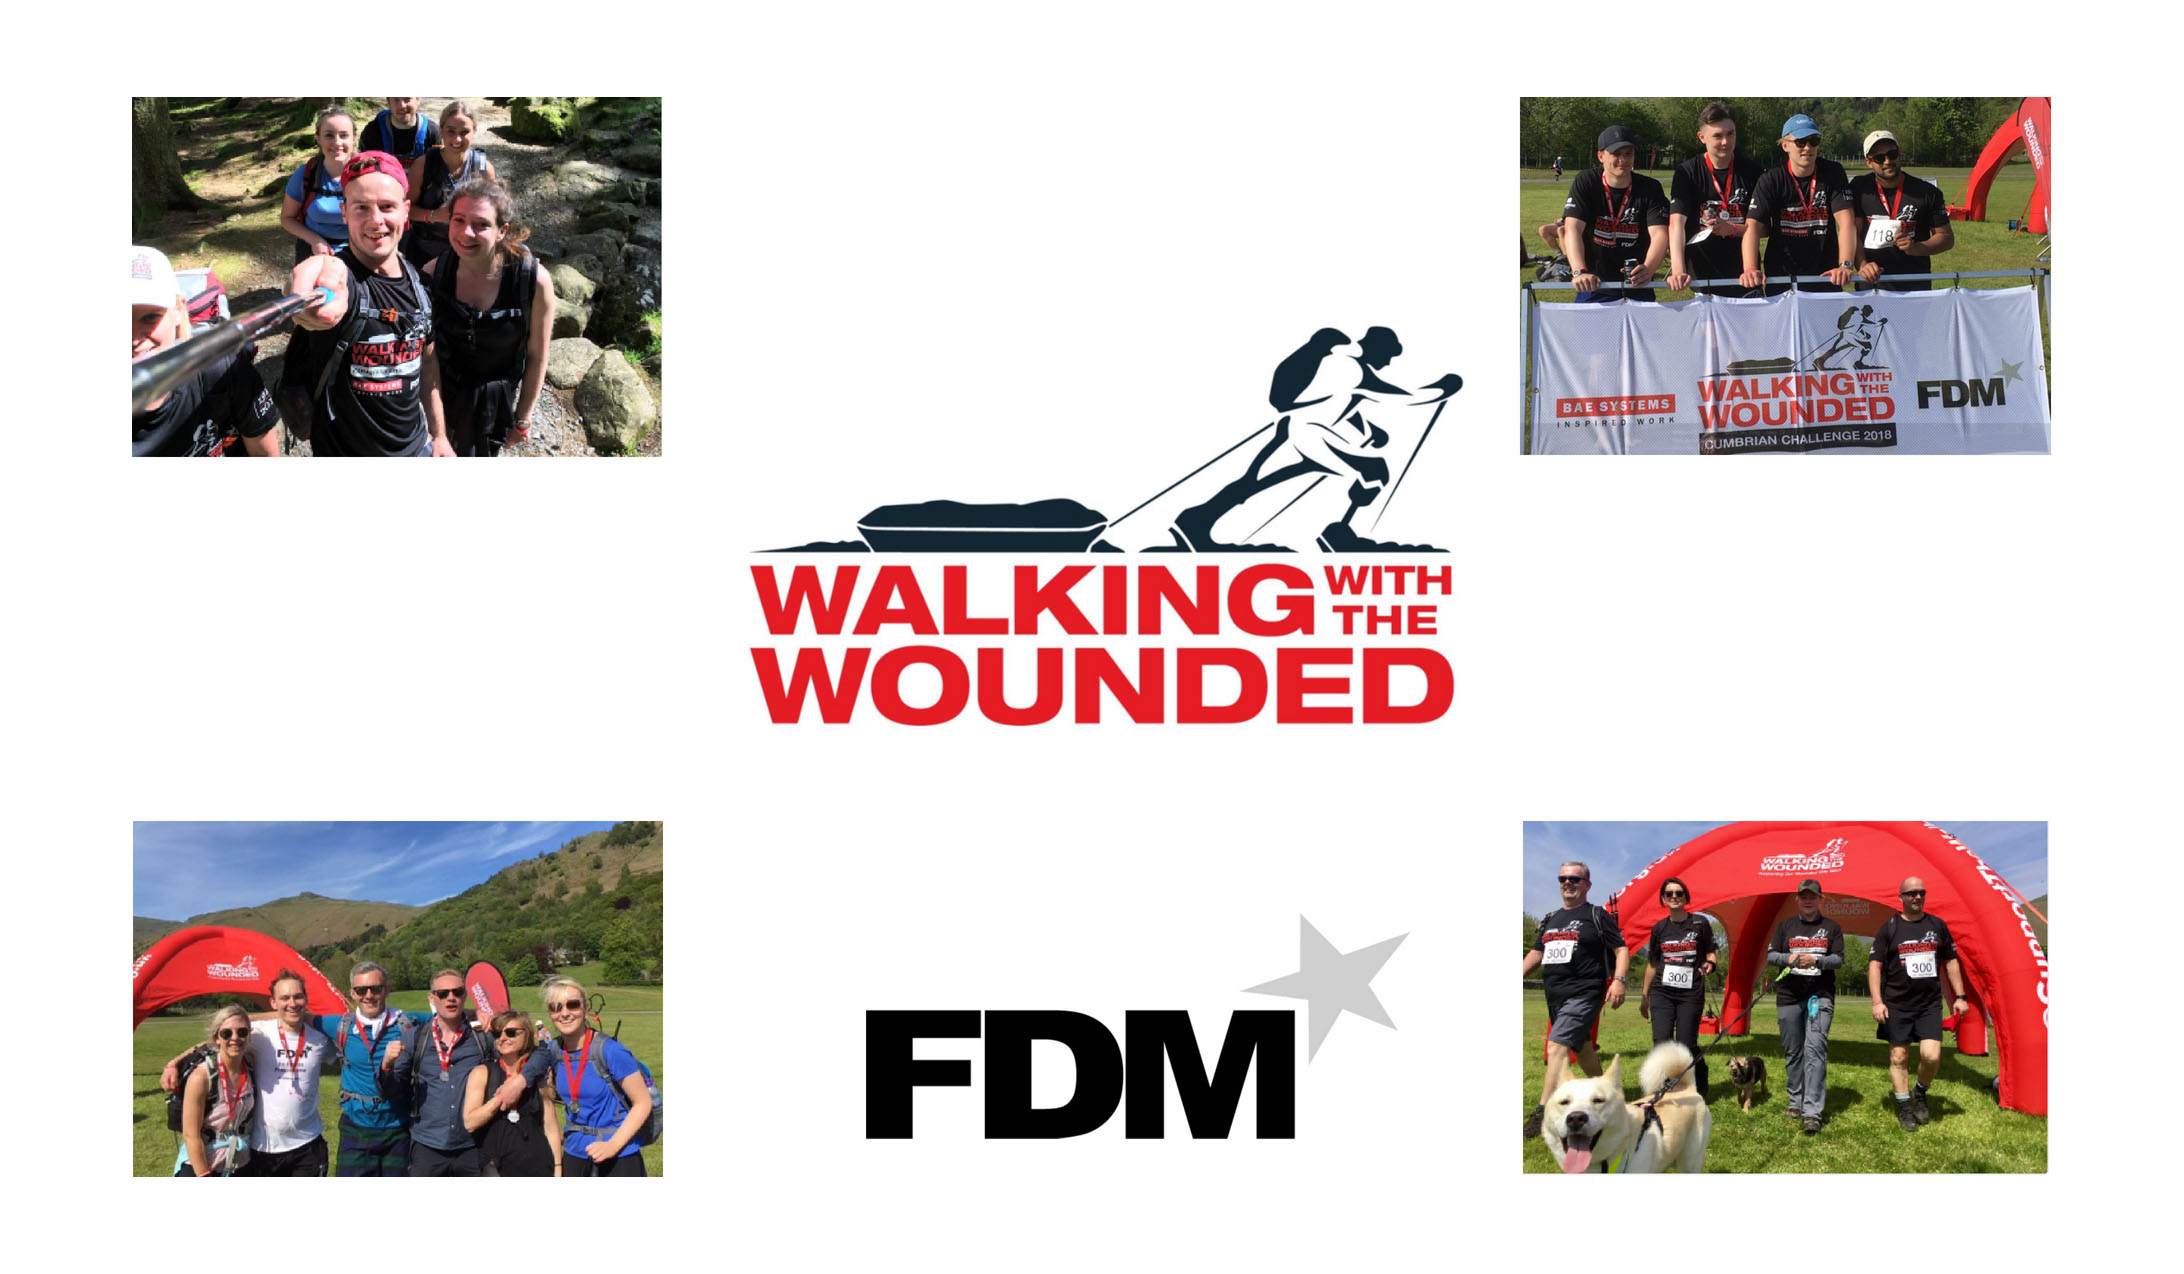 FDM Walking With The Wounded Cumbrian Challenge